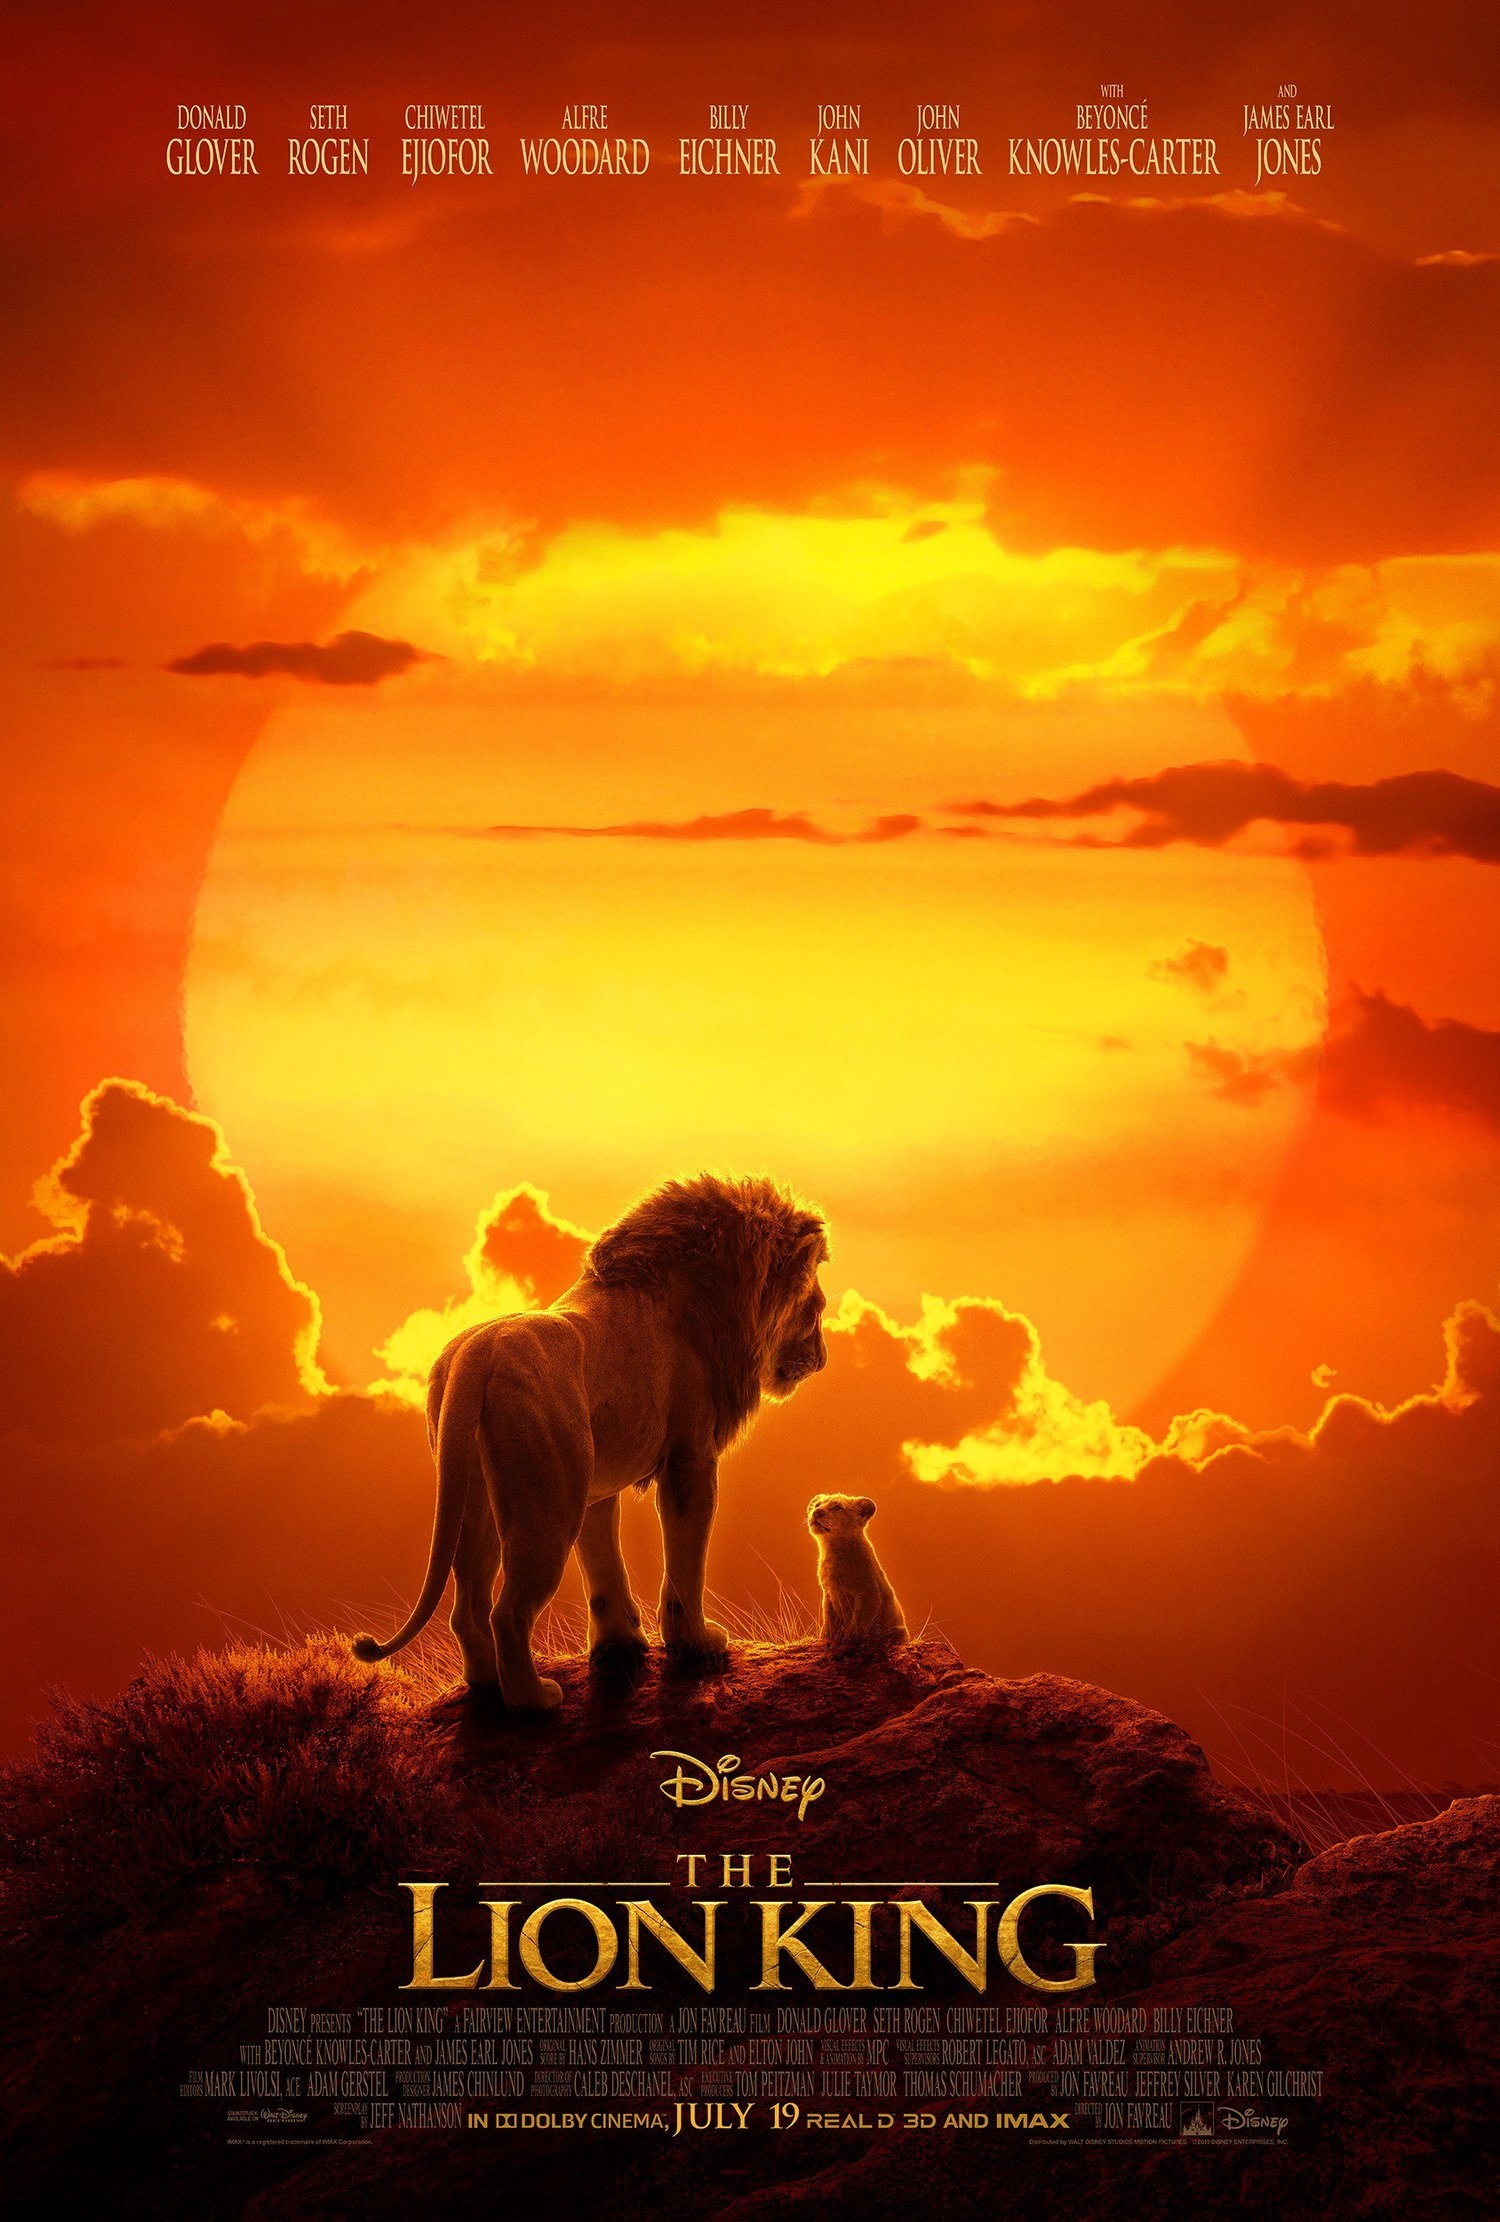 Jon Favreau's THE LION KING Gets a New Poster and TV Spot - Long Live The King1